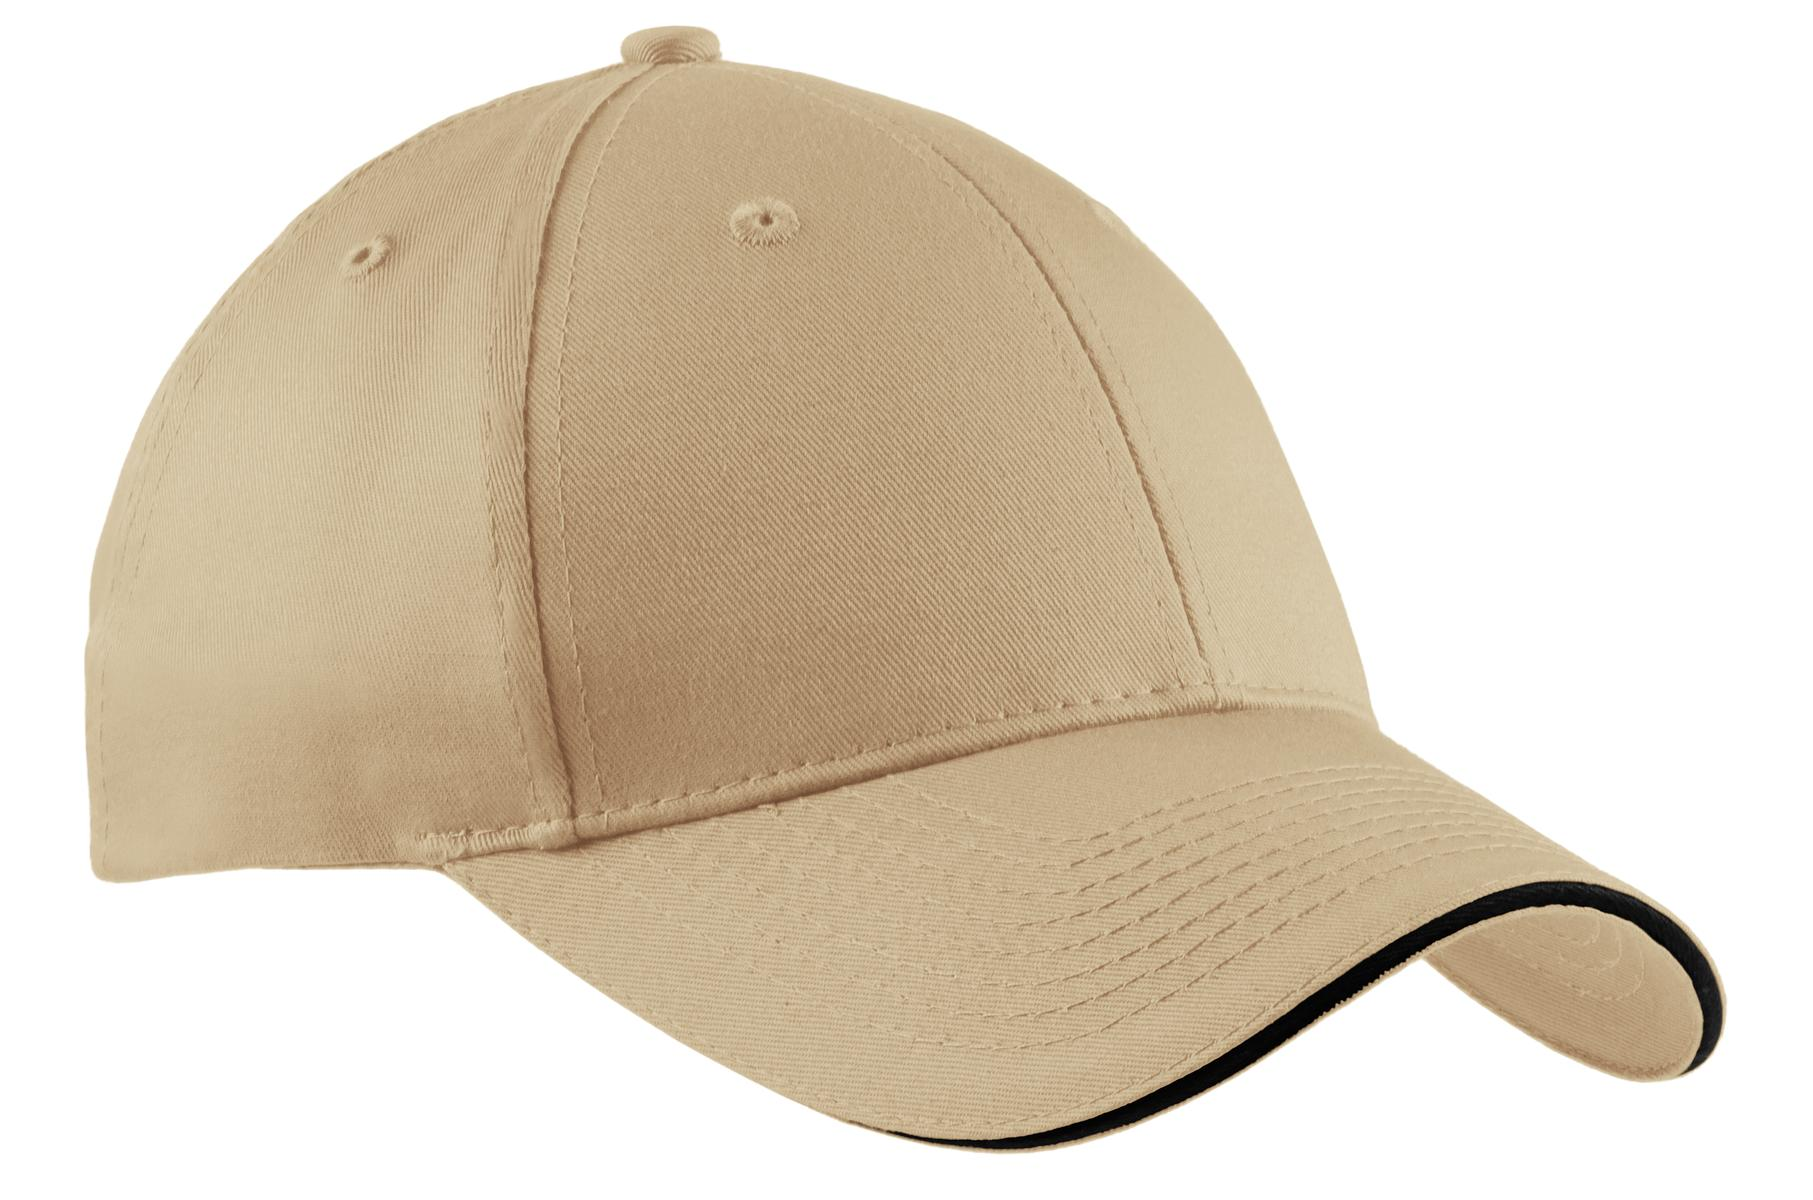 Port & Company® - Sandwich Bill Cap. WITH YOUR COMPANY NAME OR LOGO